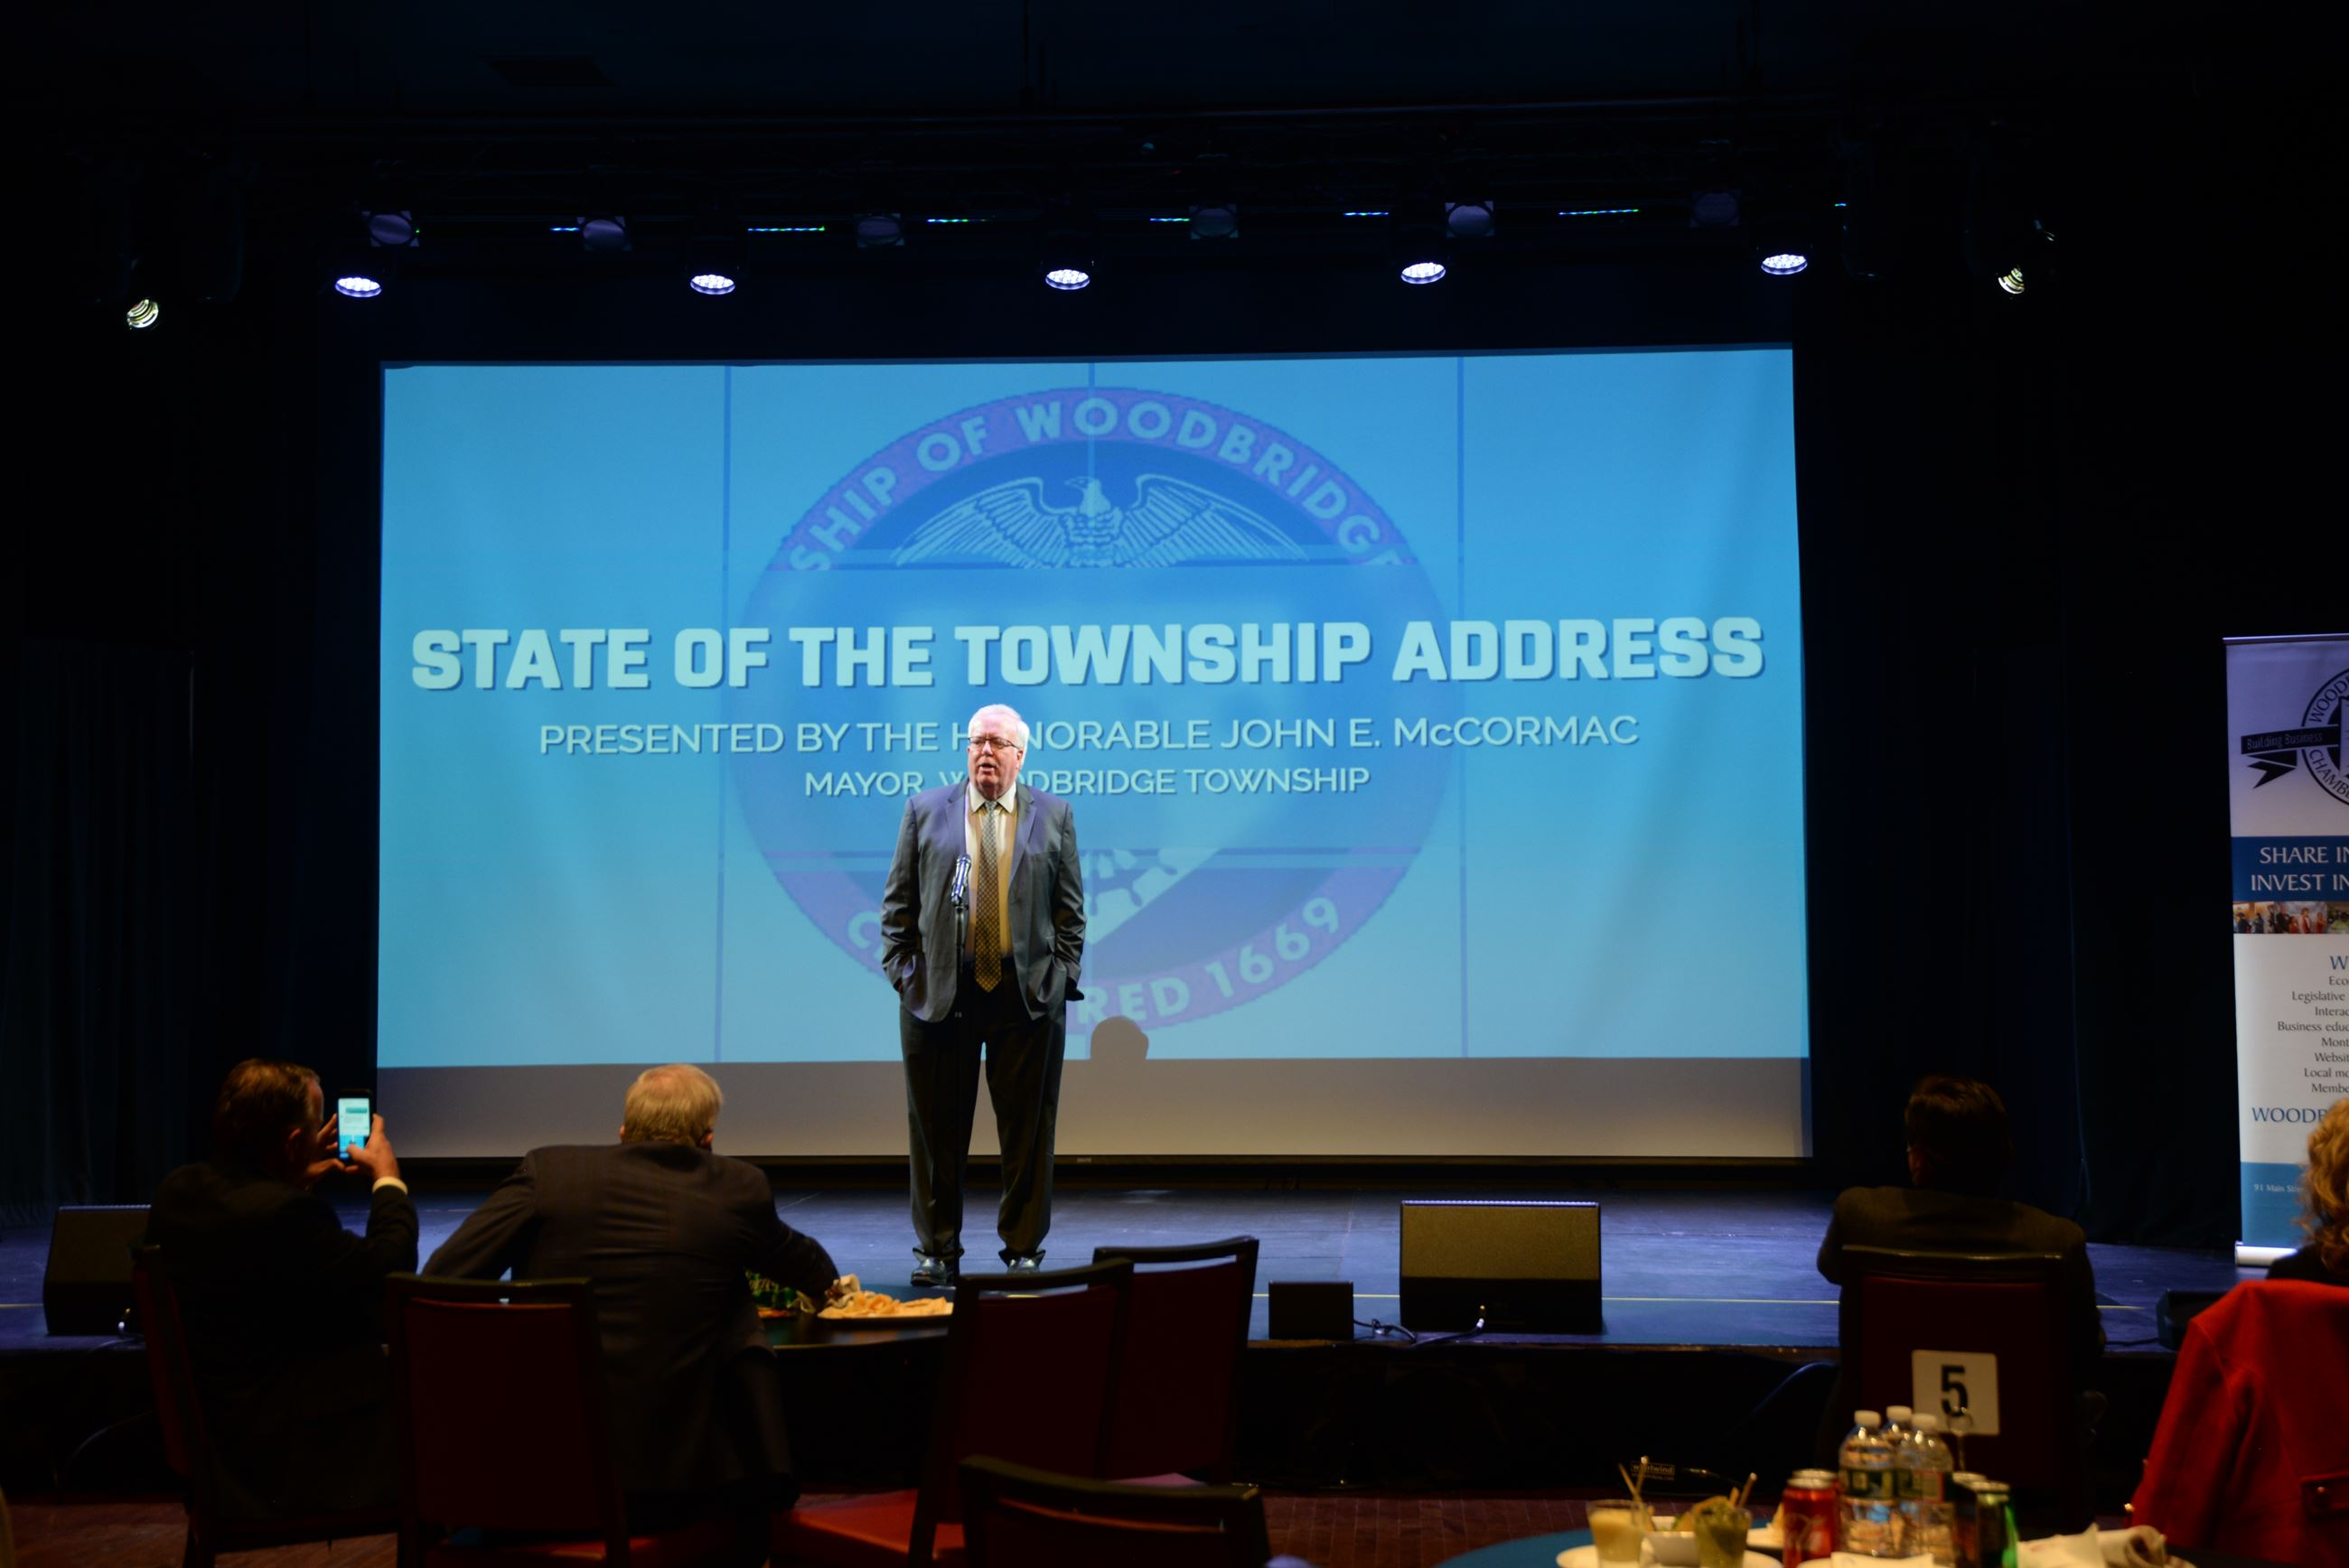 State of TWP picture  Opens in new window